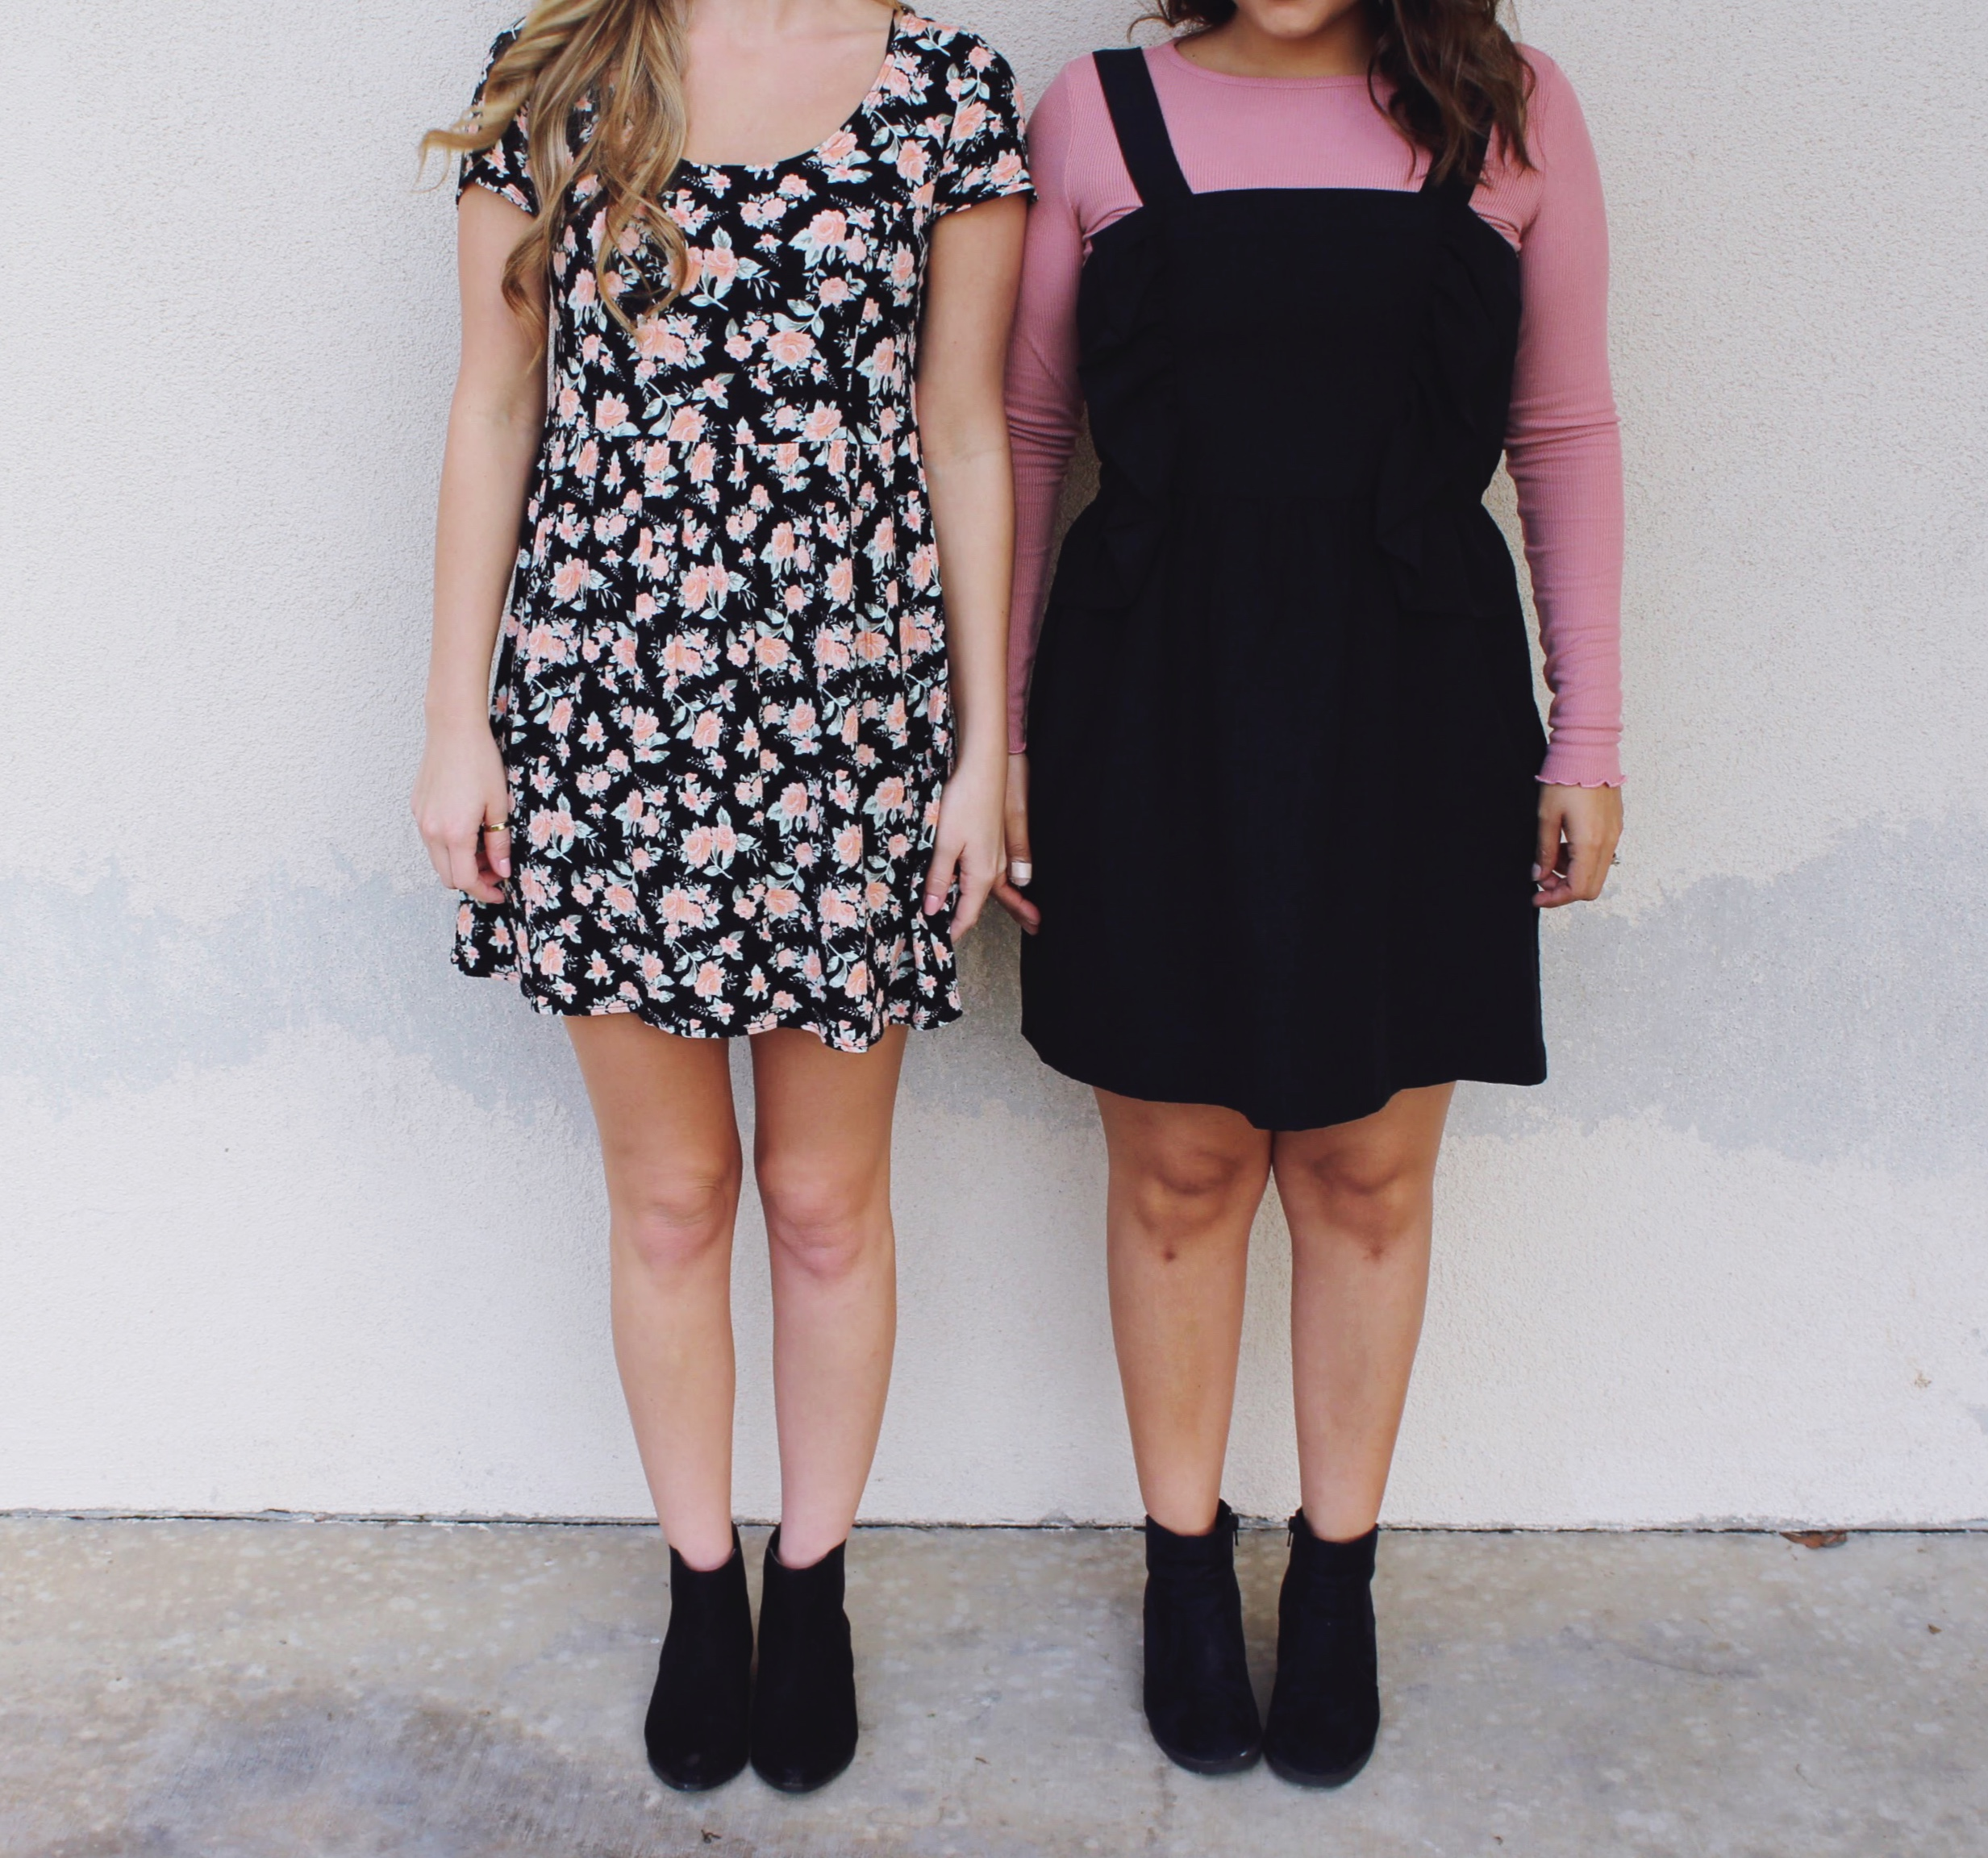 Floral 90's style dress and black jumper with frill details